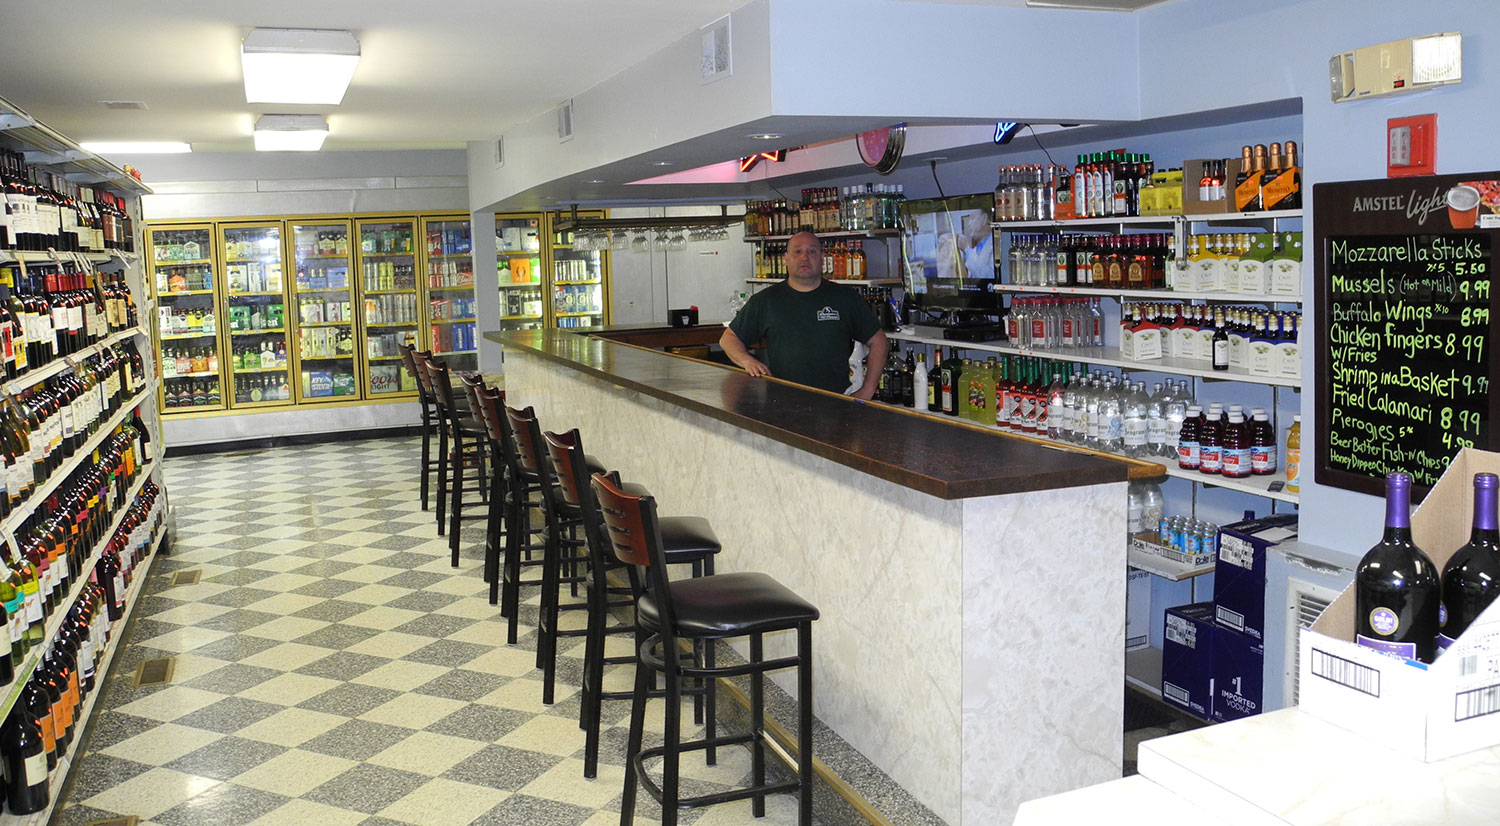 domenicos-liquer-store-bar-1